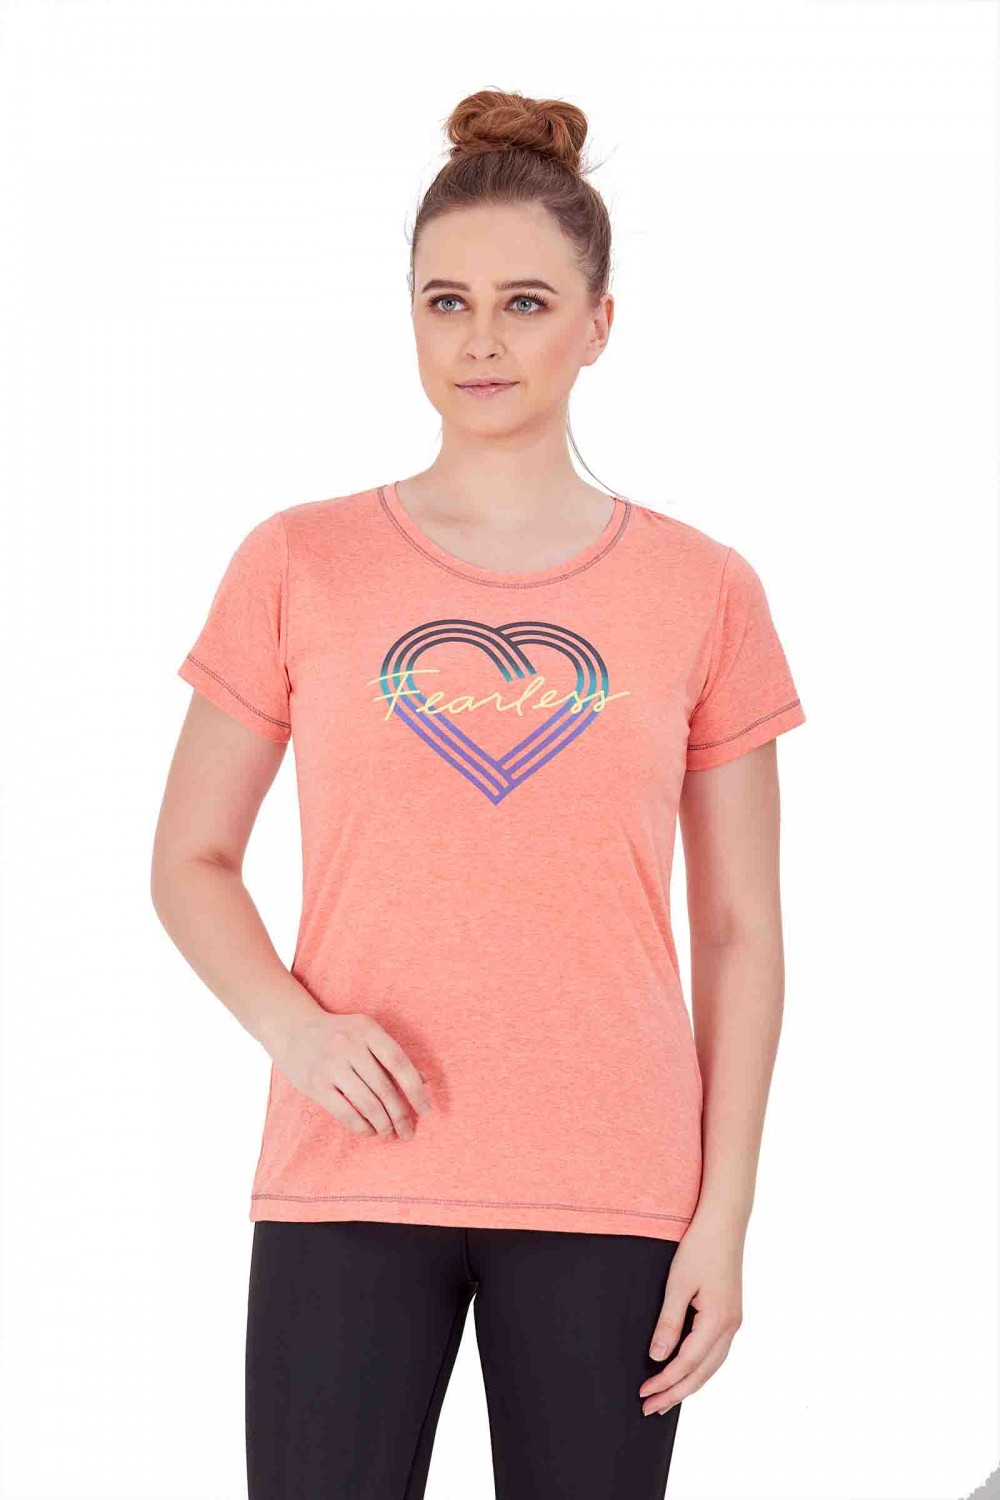 Flexelle Red Gym T Shirt FT-37Red